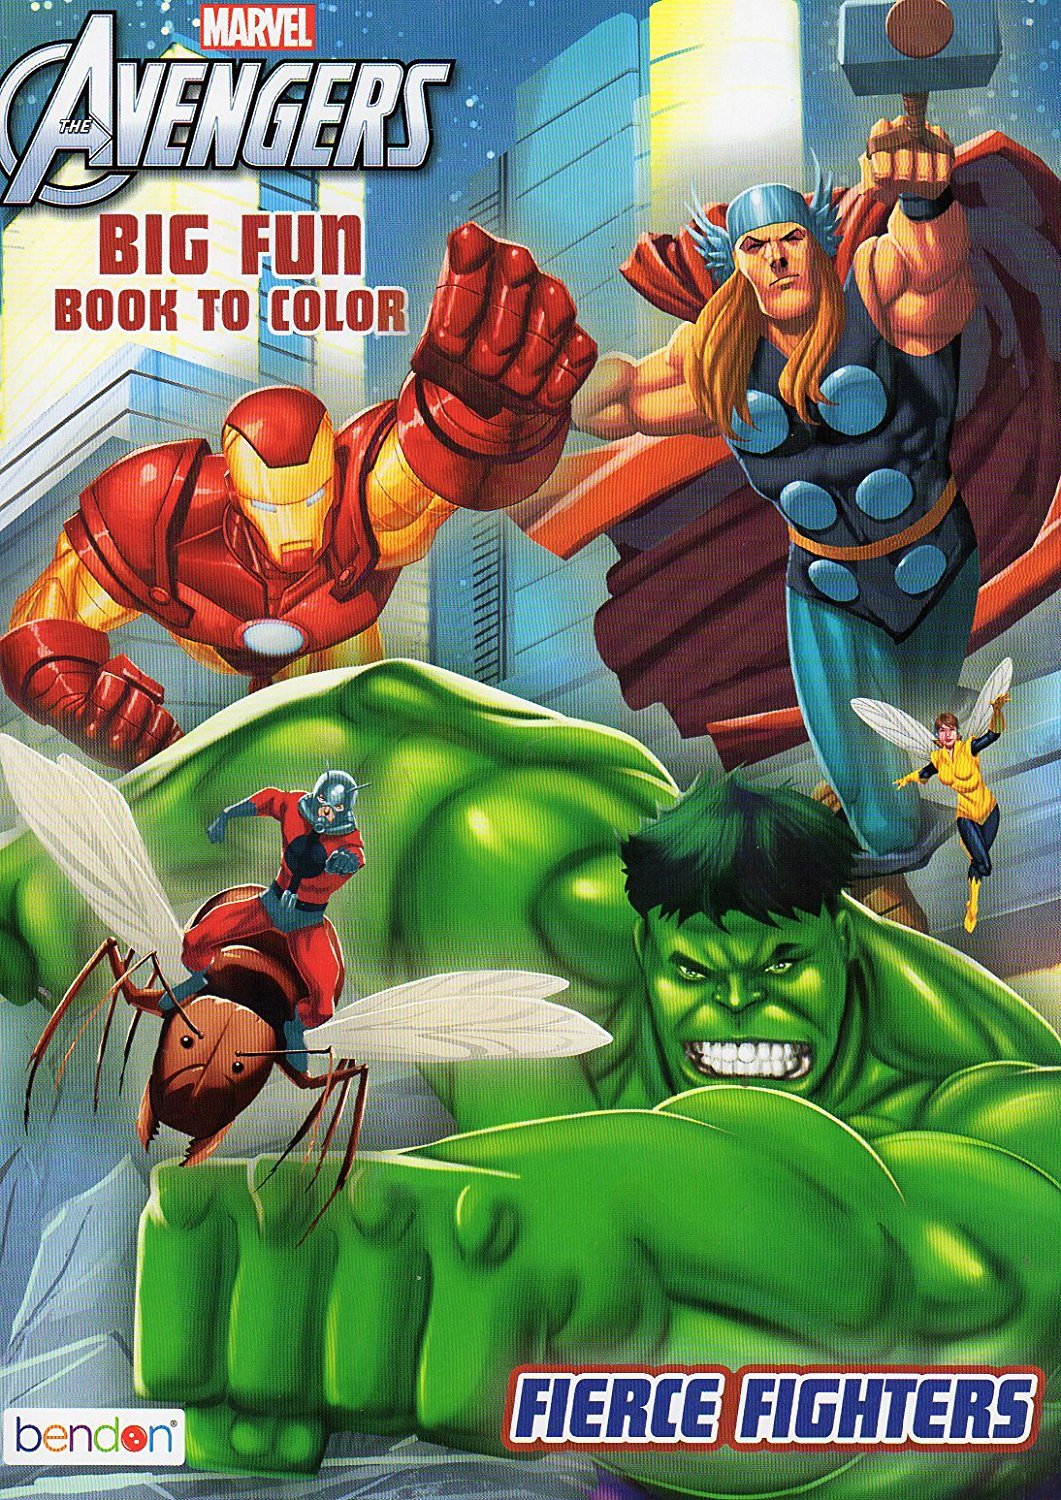 Marvel the Avengers Big Fun Book to Color - Fierce Fighters